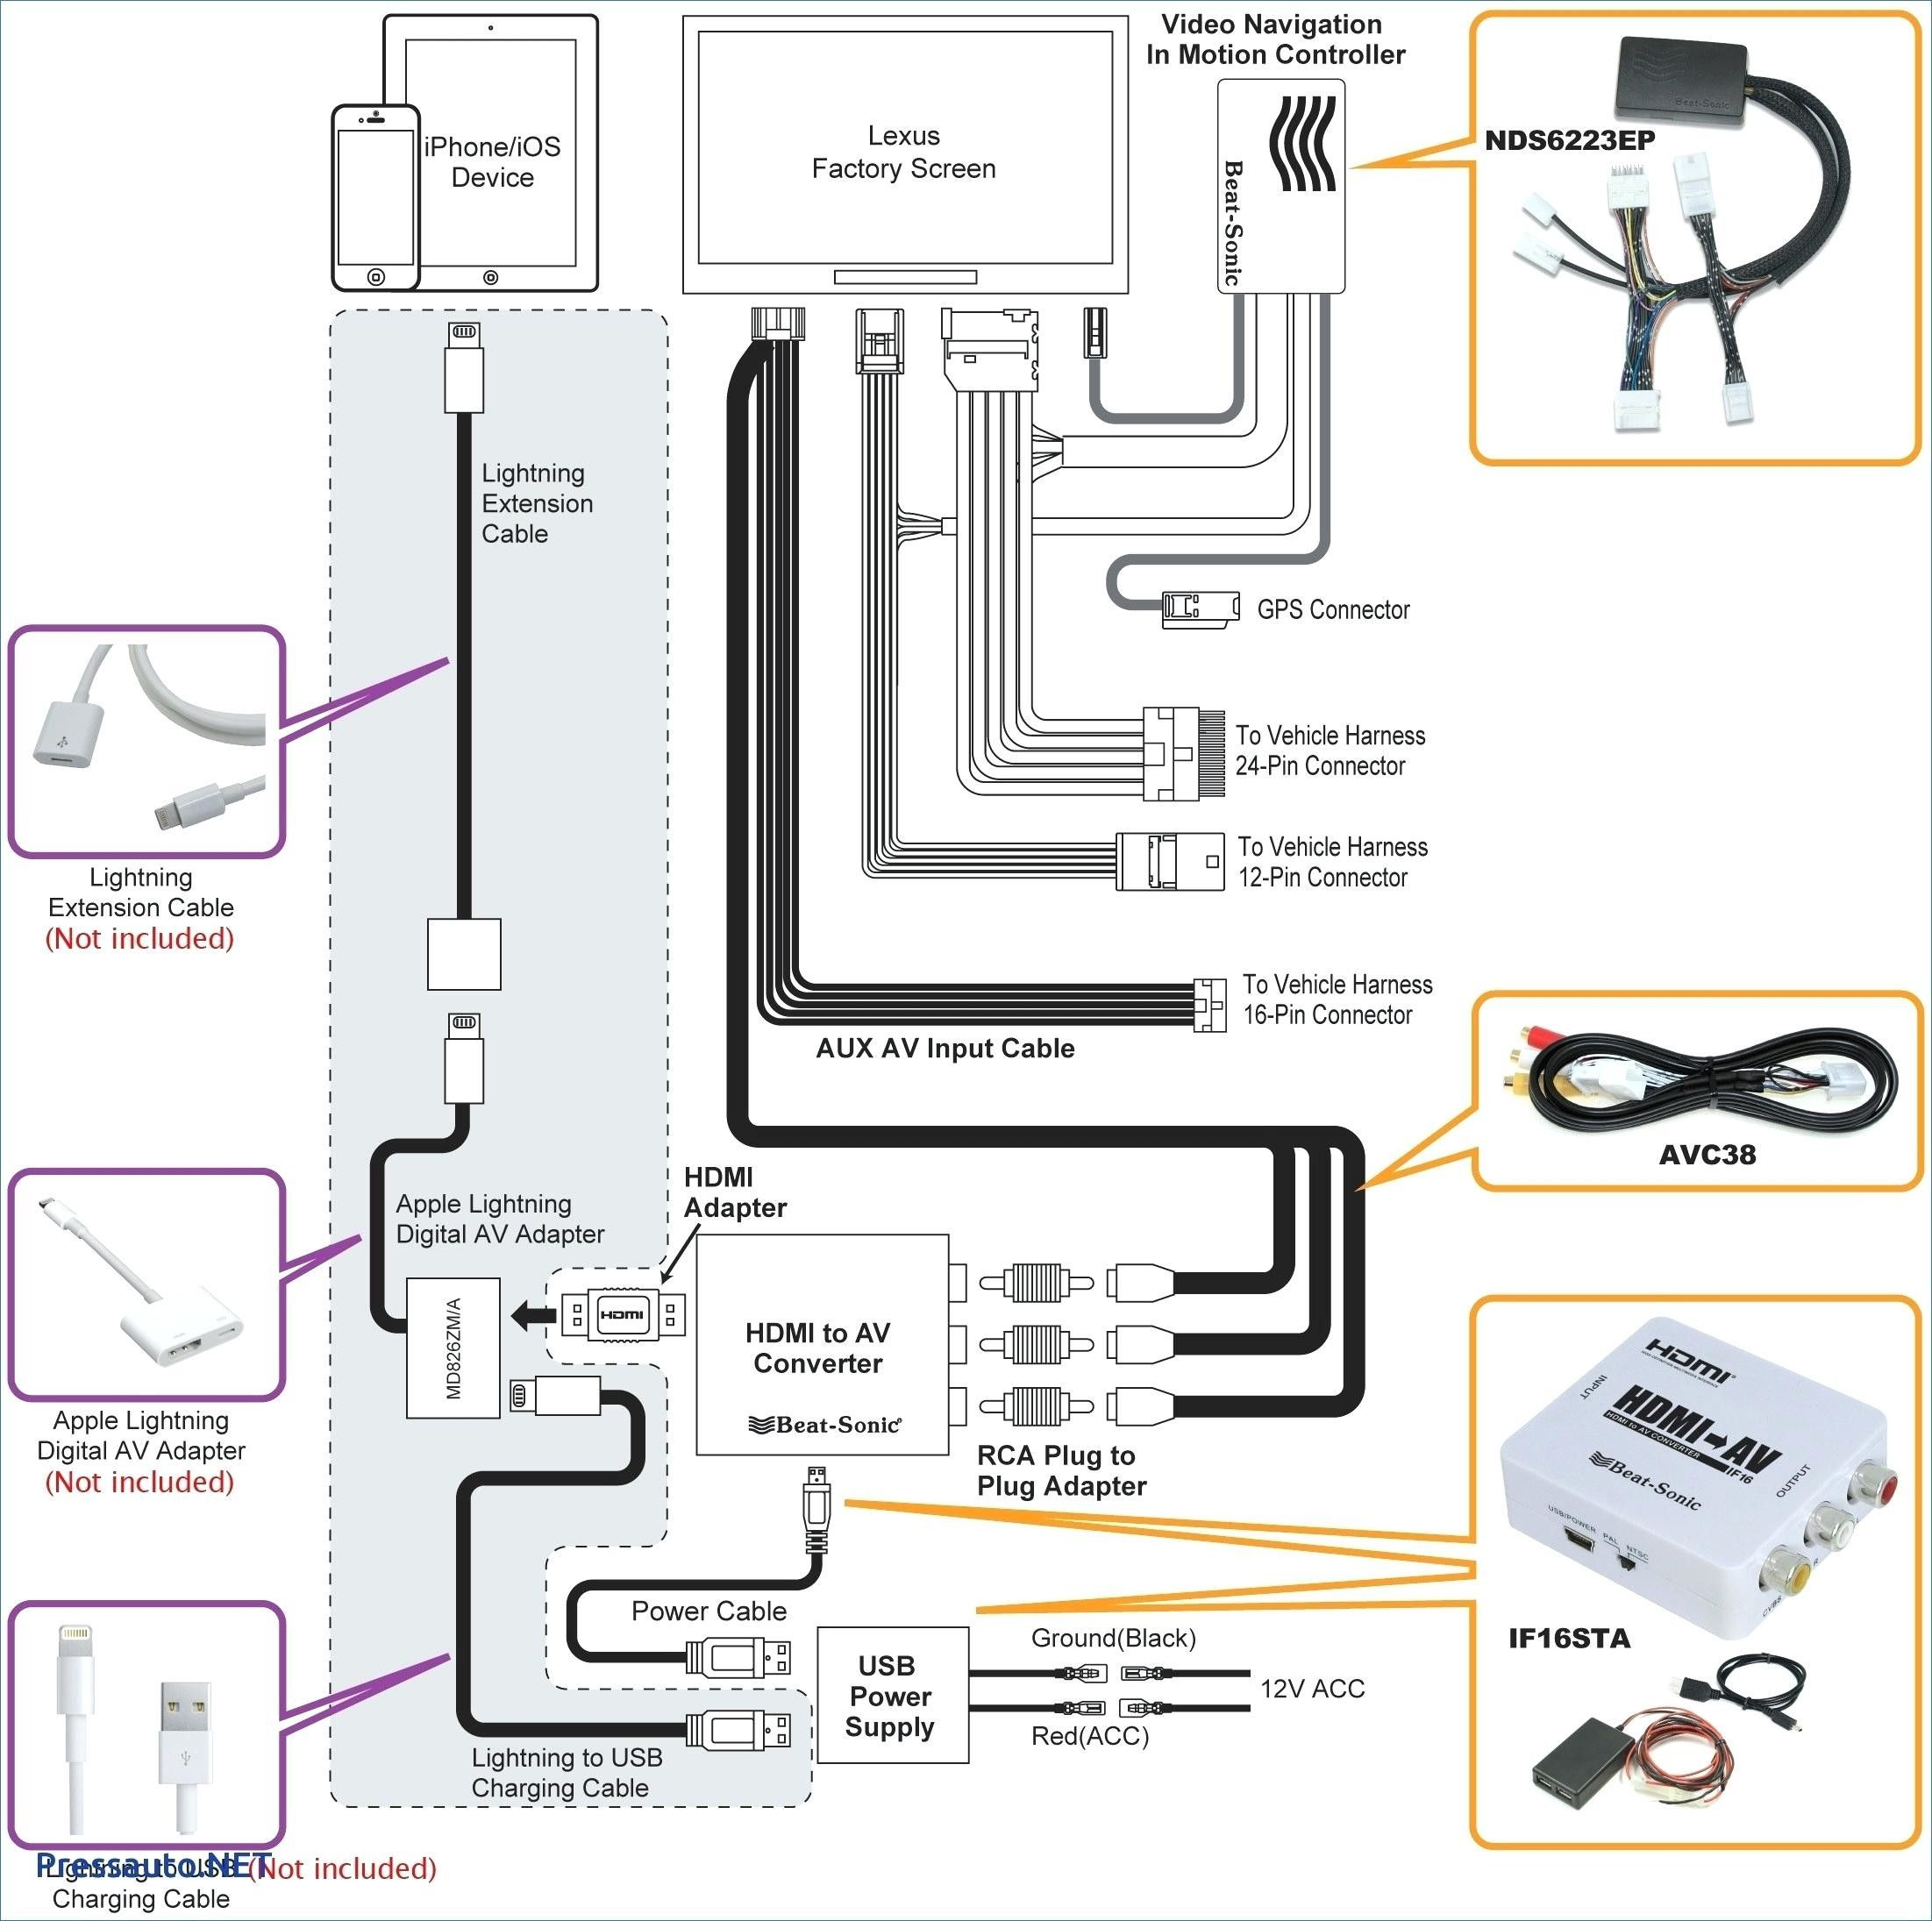 Security Camera Wiring Color Code Free Download Diy Security Camera Color Coding Diy Security